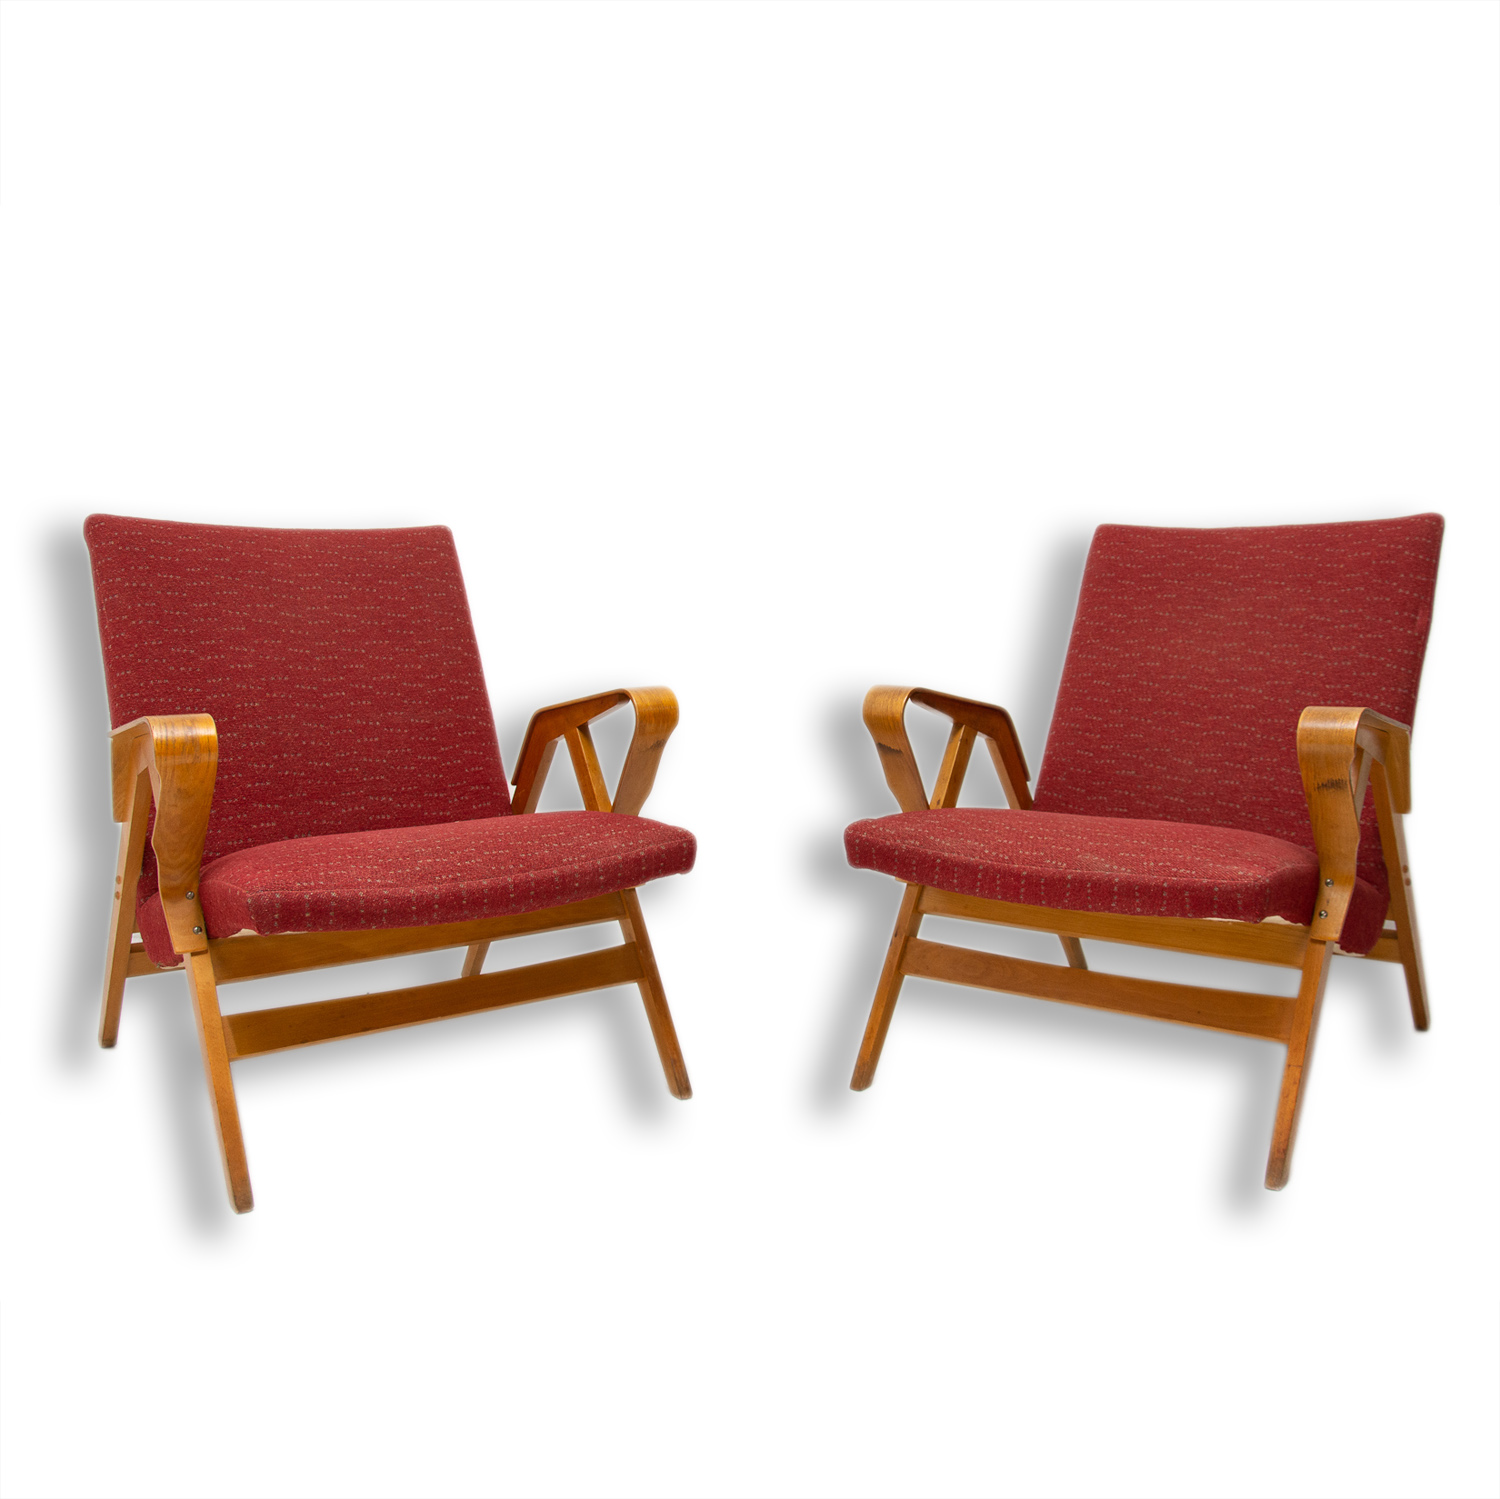 Image of: Pair Of Mid Century Bentwood Lounge Armchairs By Frantisek Jirak For Tatra Nabytok Czechoslovakia 1960 S Your20th Com Wholesale Of The Antique Furniture Your20th Com